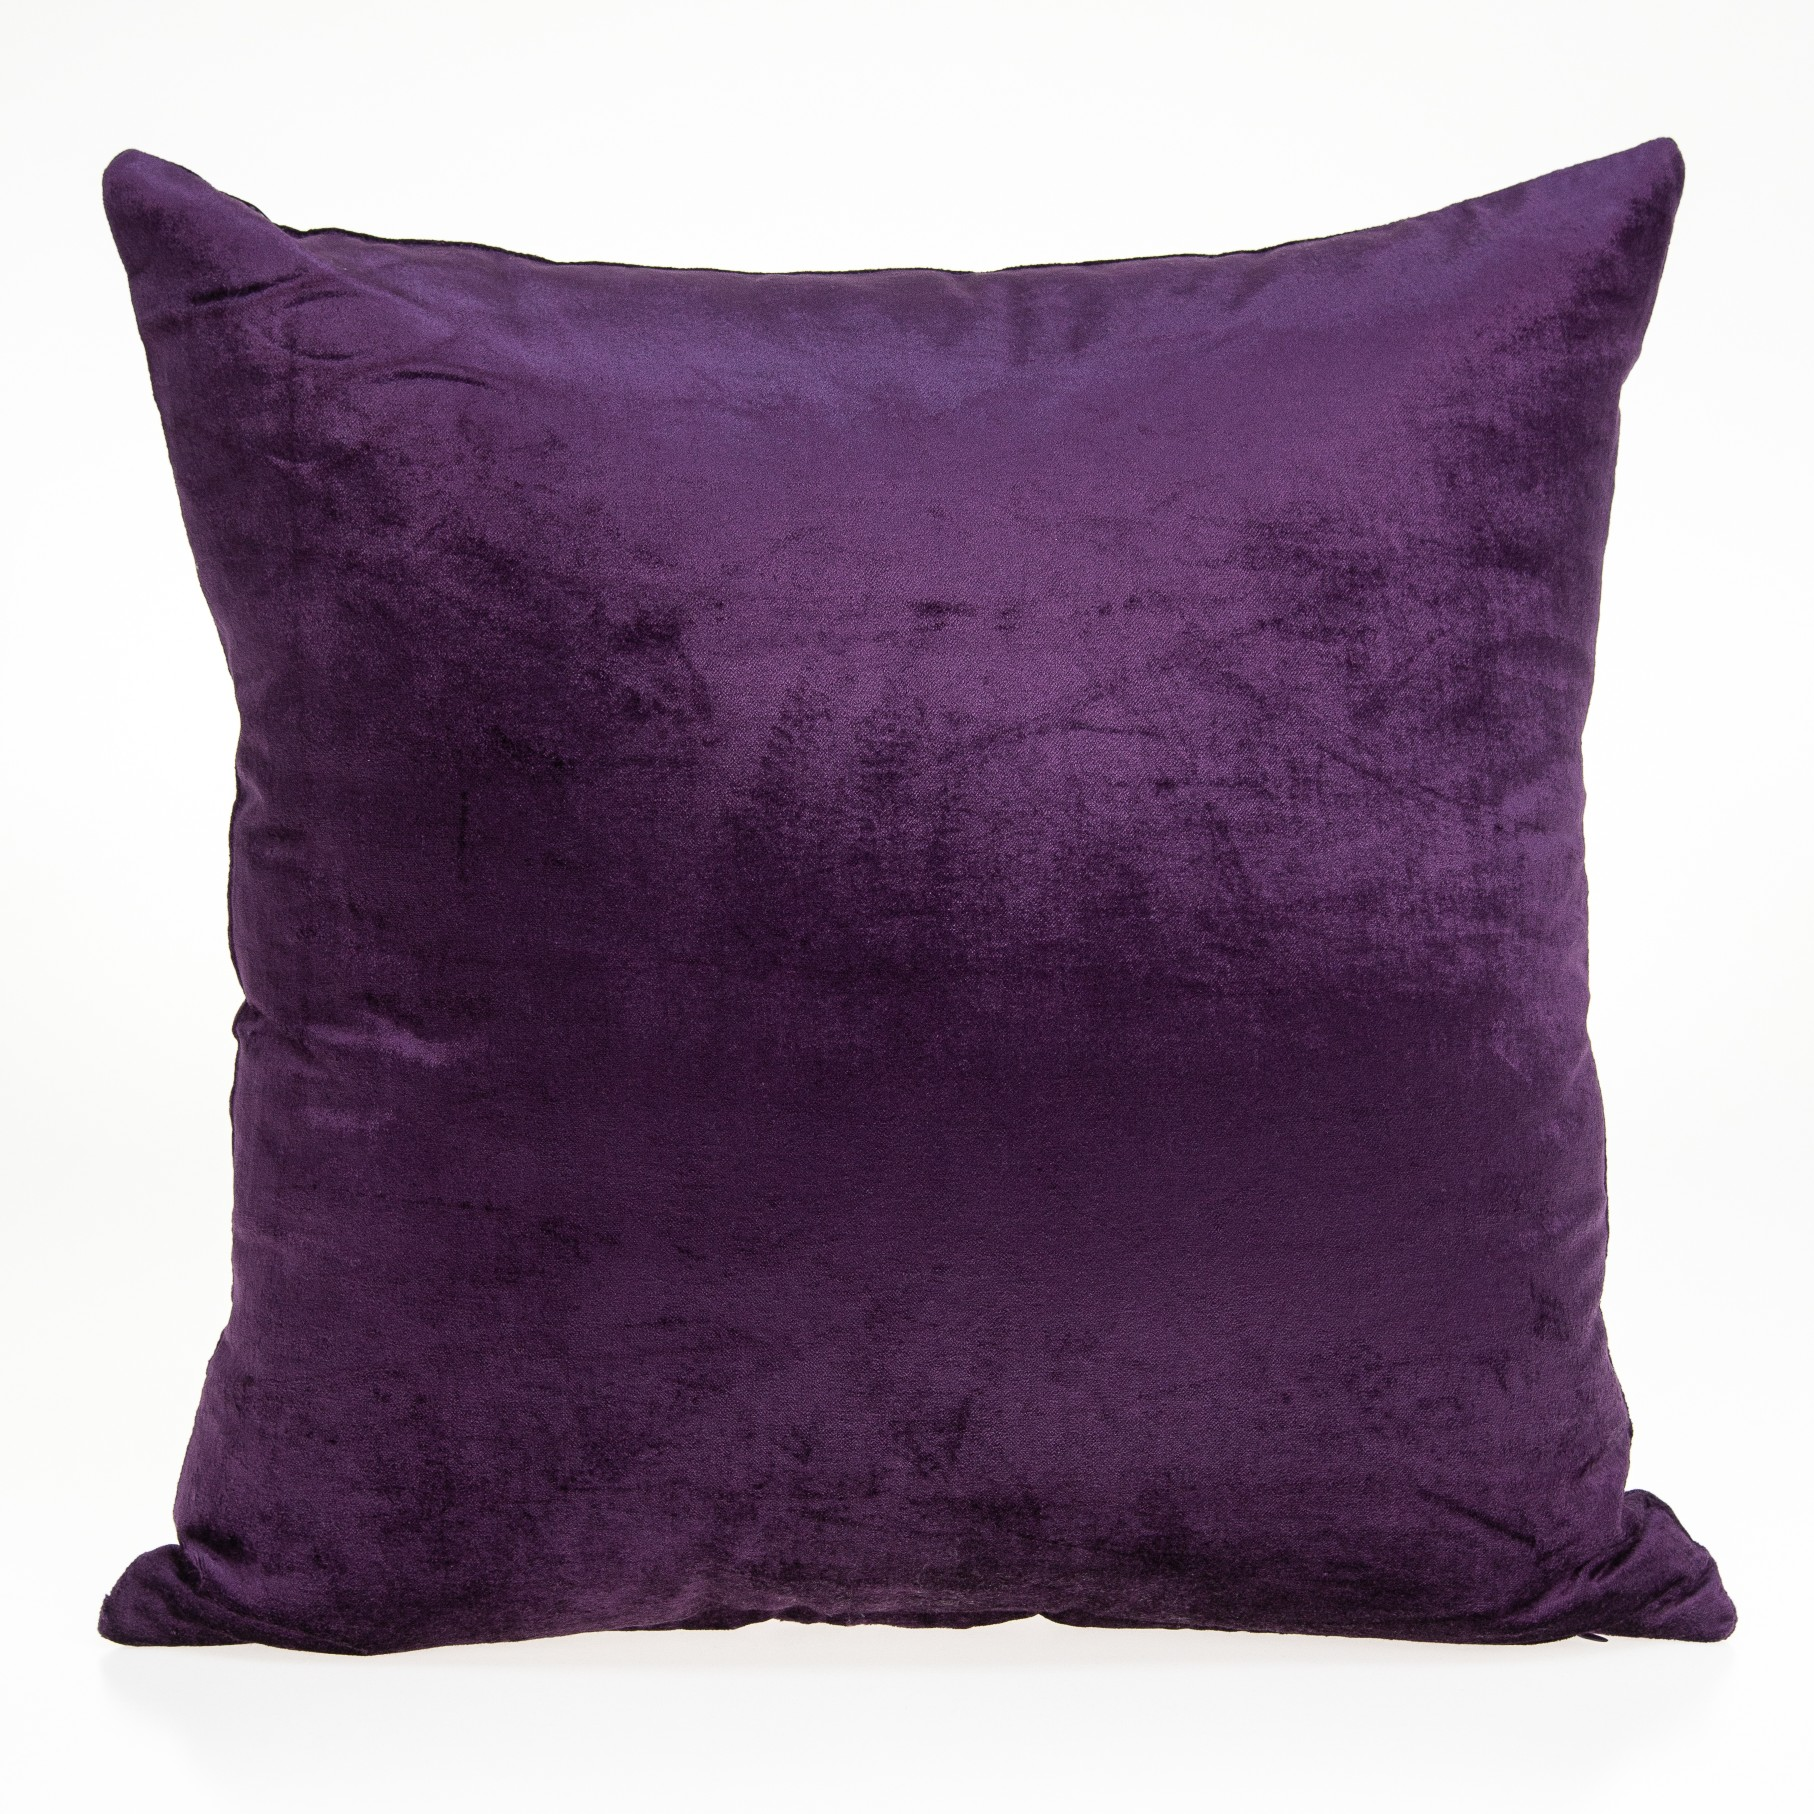 """22"""" x 0.5"""" x 22"""" Transitional Purple Solid Pillow Cover"""